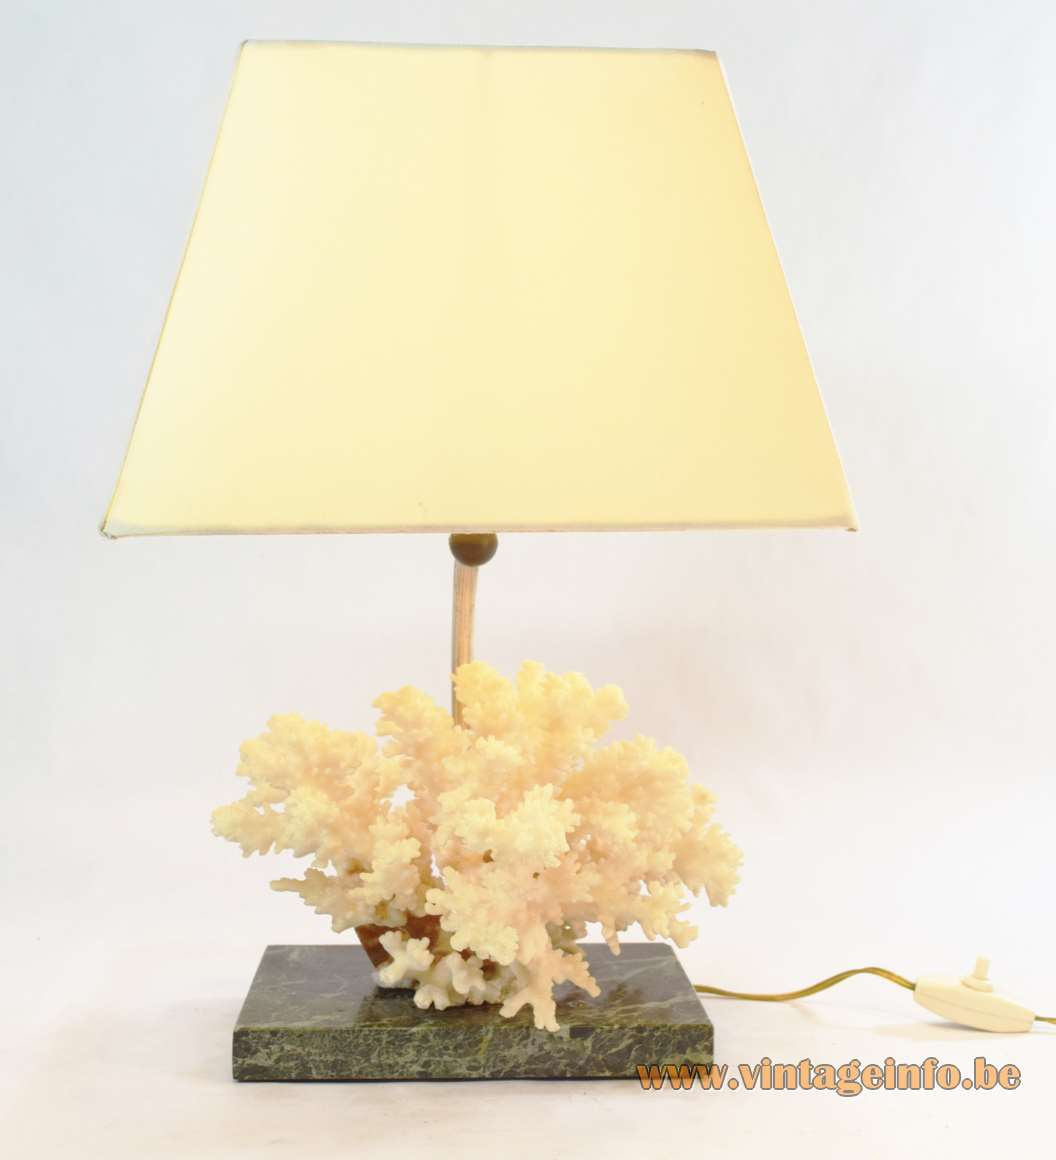 Cauliflower Coral Table Lamp 1970s Marble base fabric lampshade metal rod Willy Daro